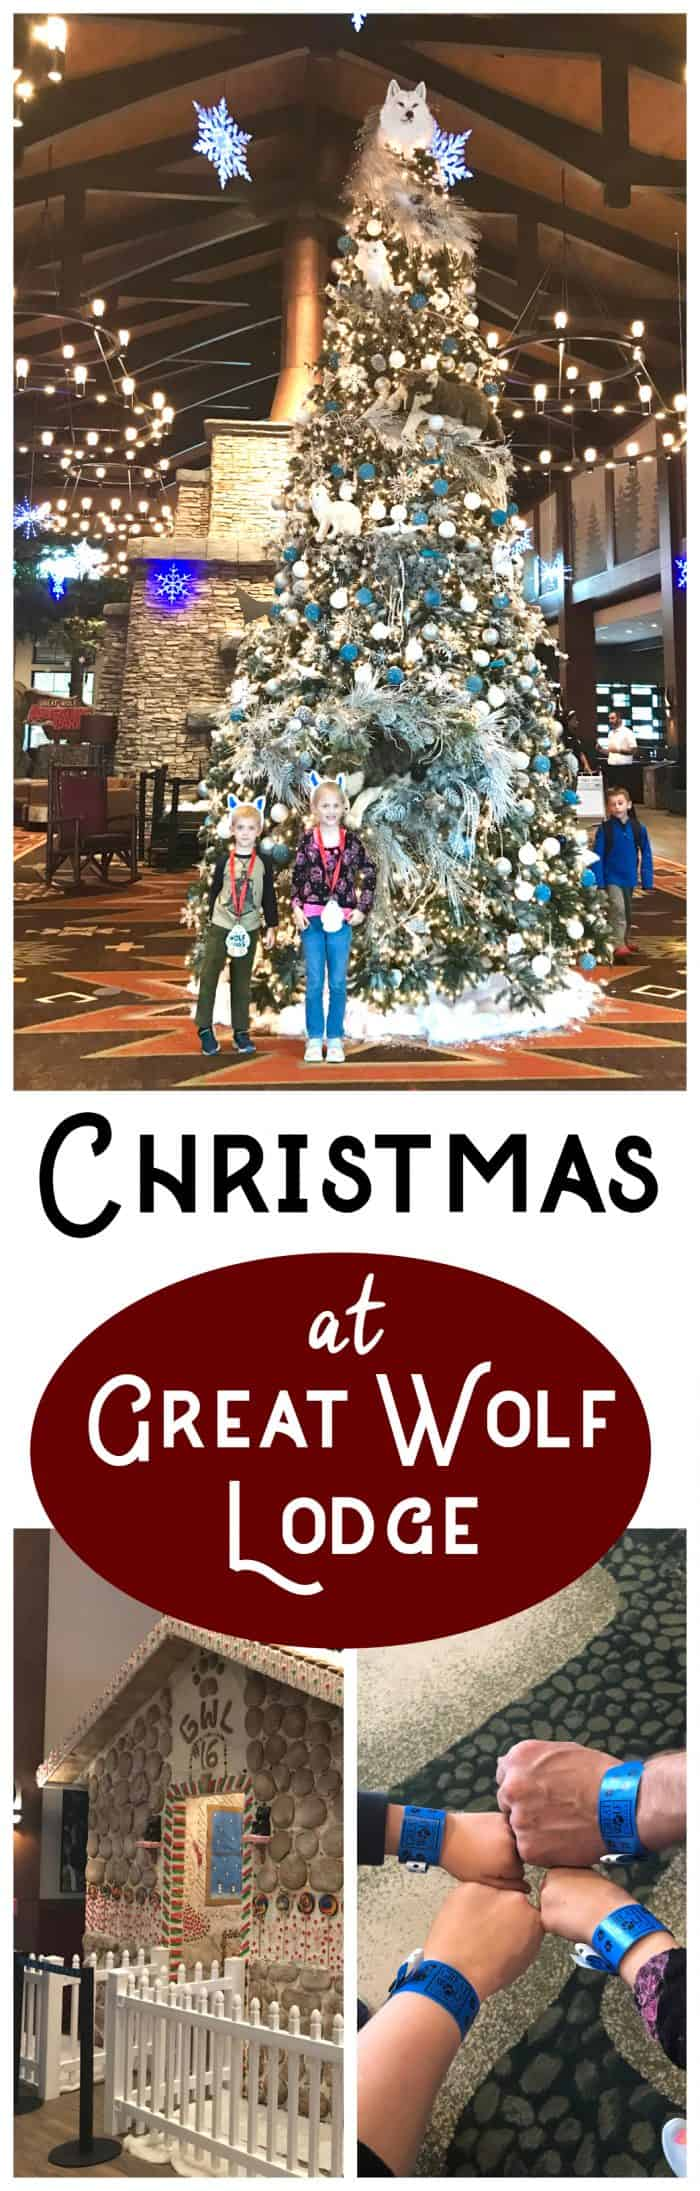 Great Wolf Lodge Christmas with Great Wolf Lodge snowland